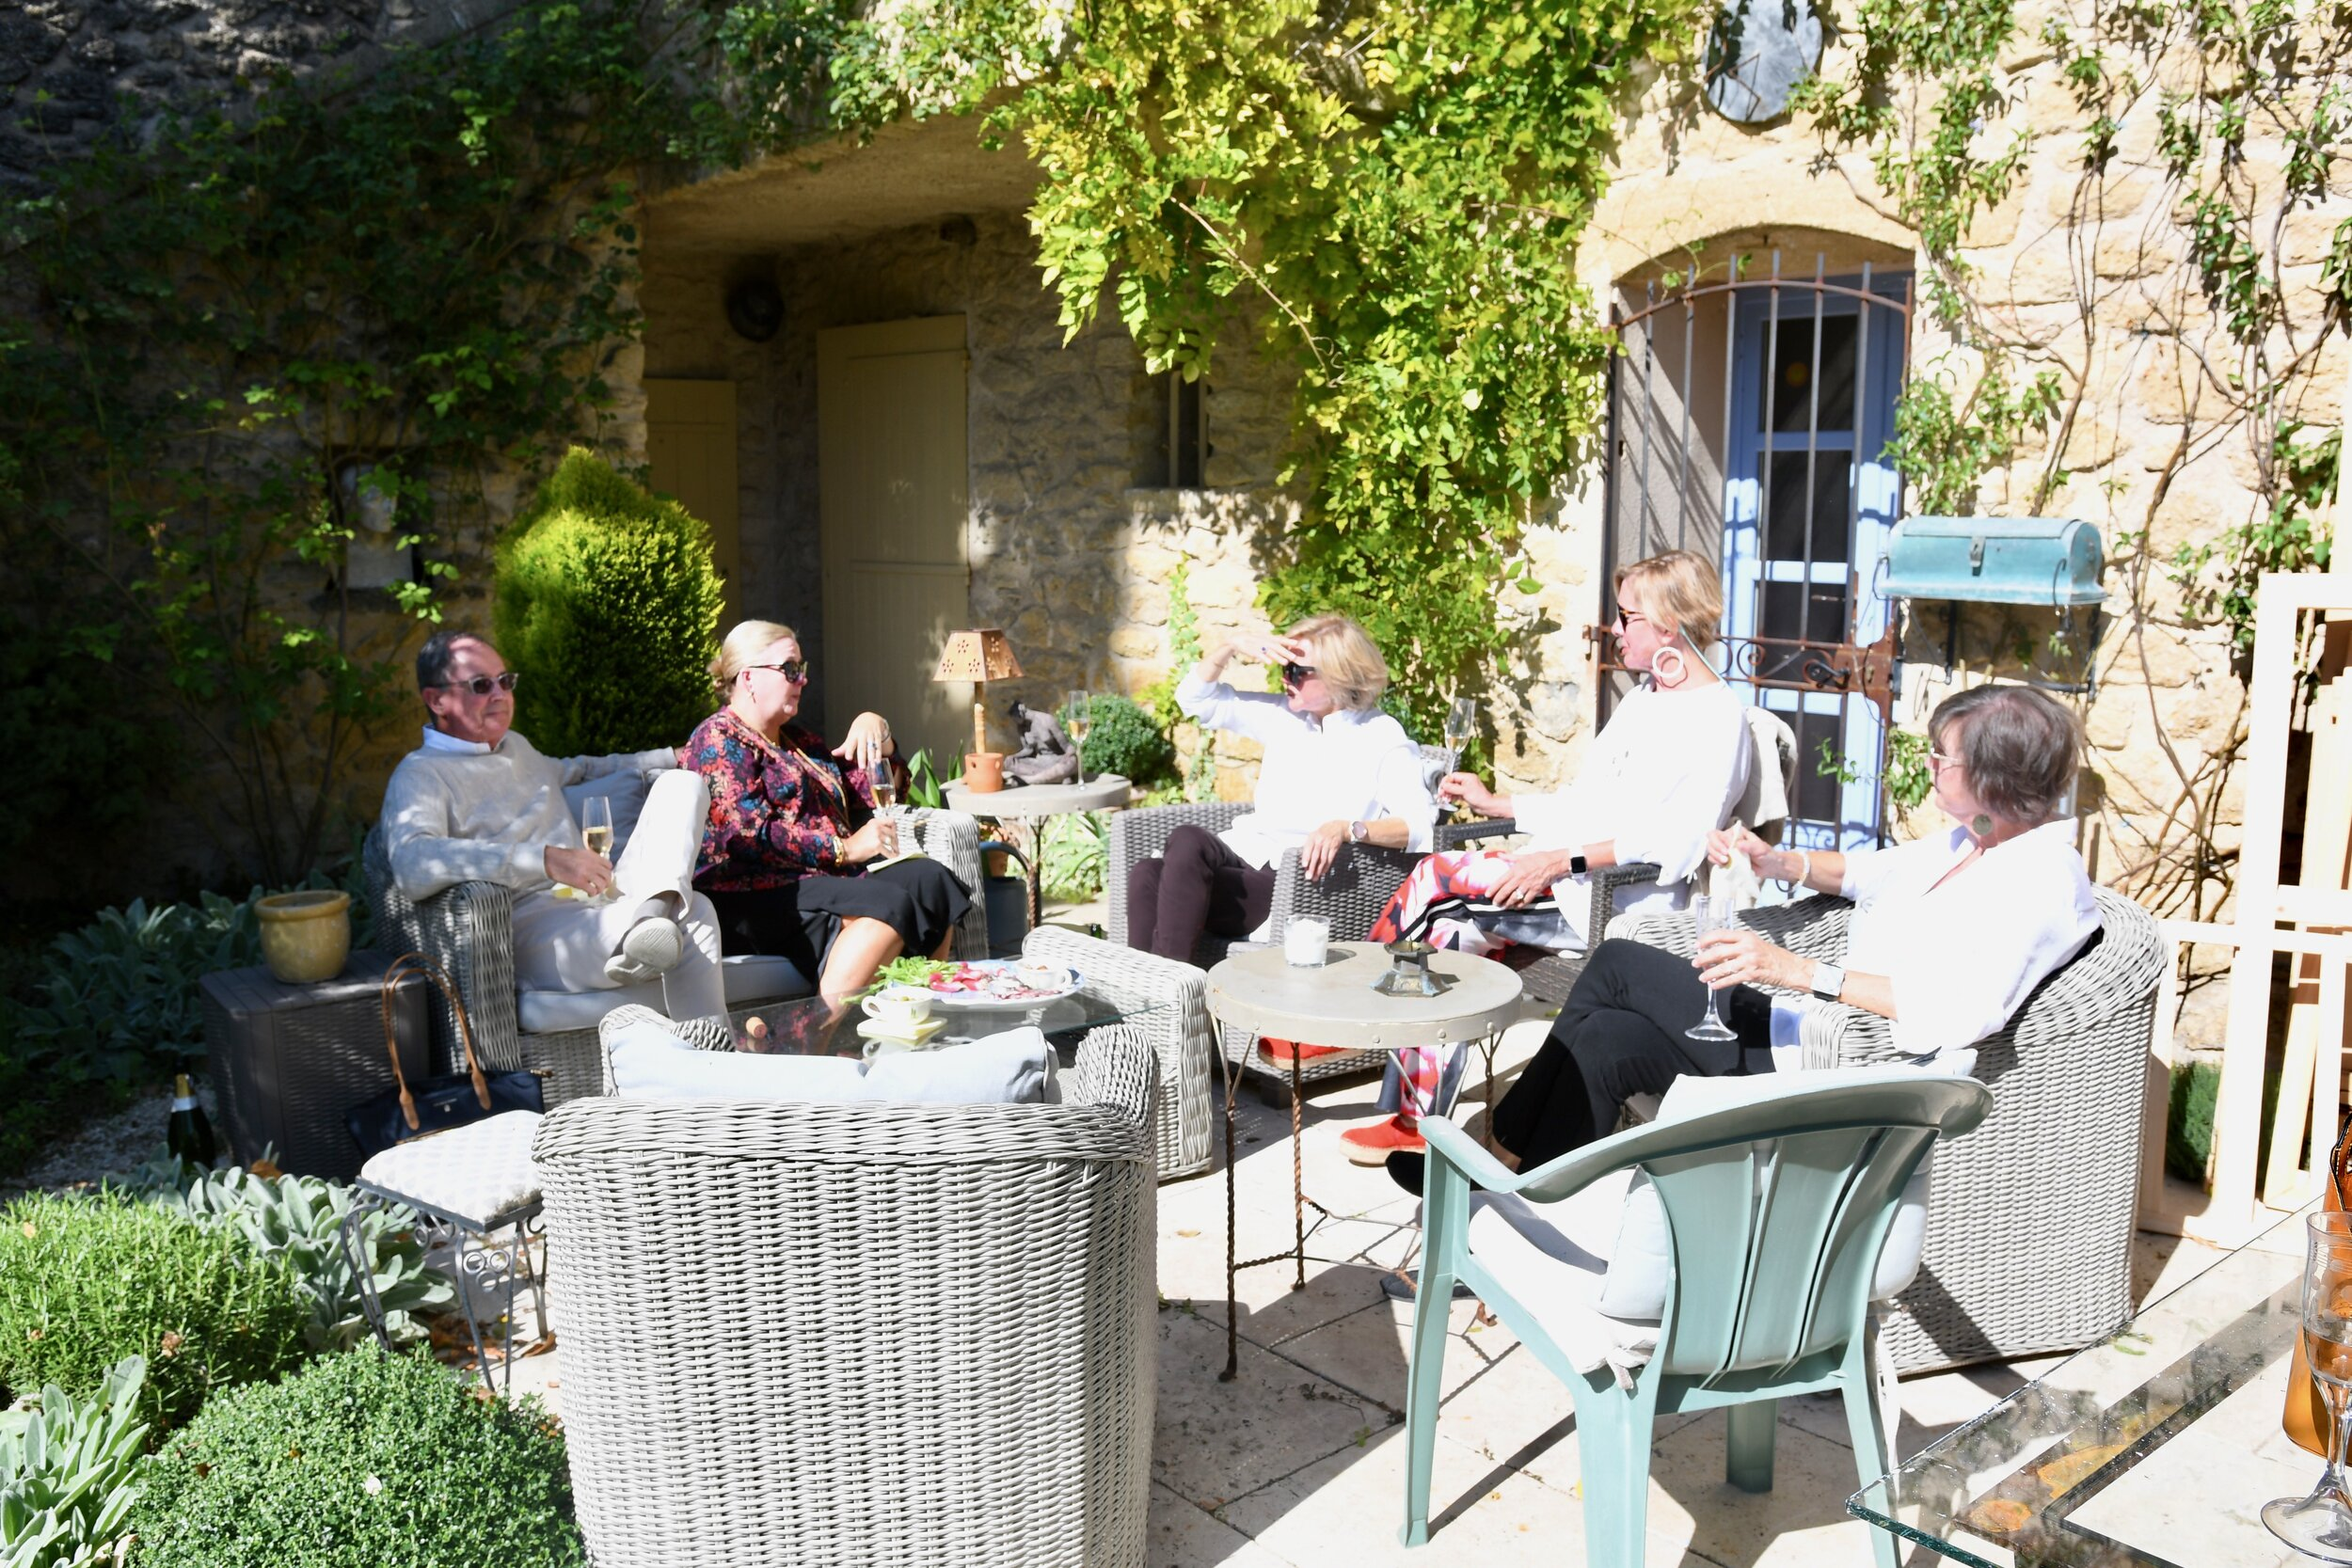 Al Fresco nibbles - My Crazy Blonde Trip to France